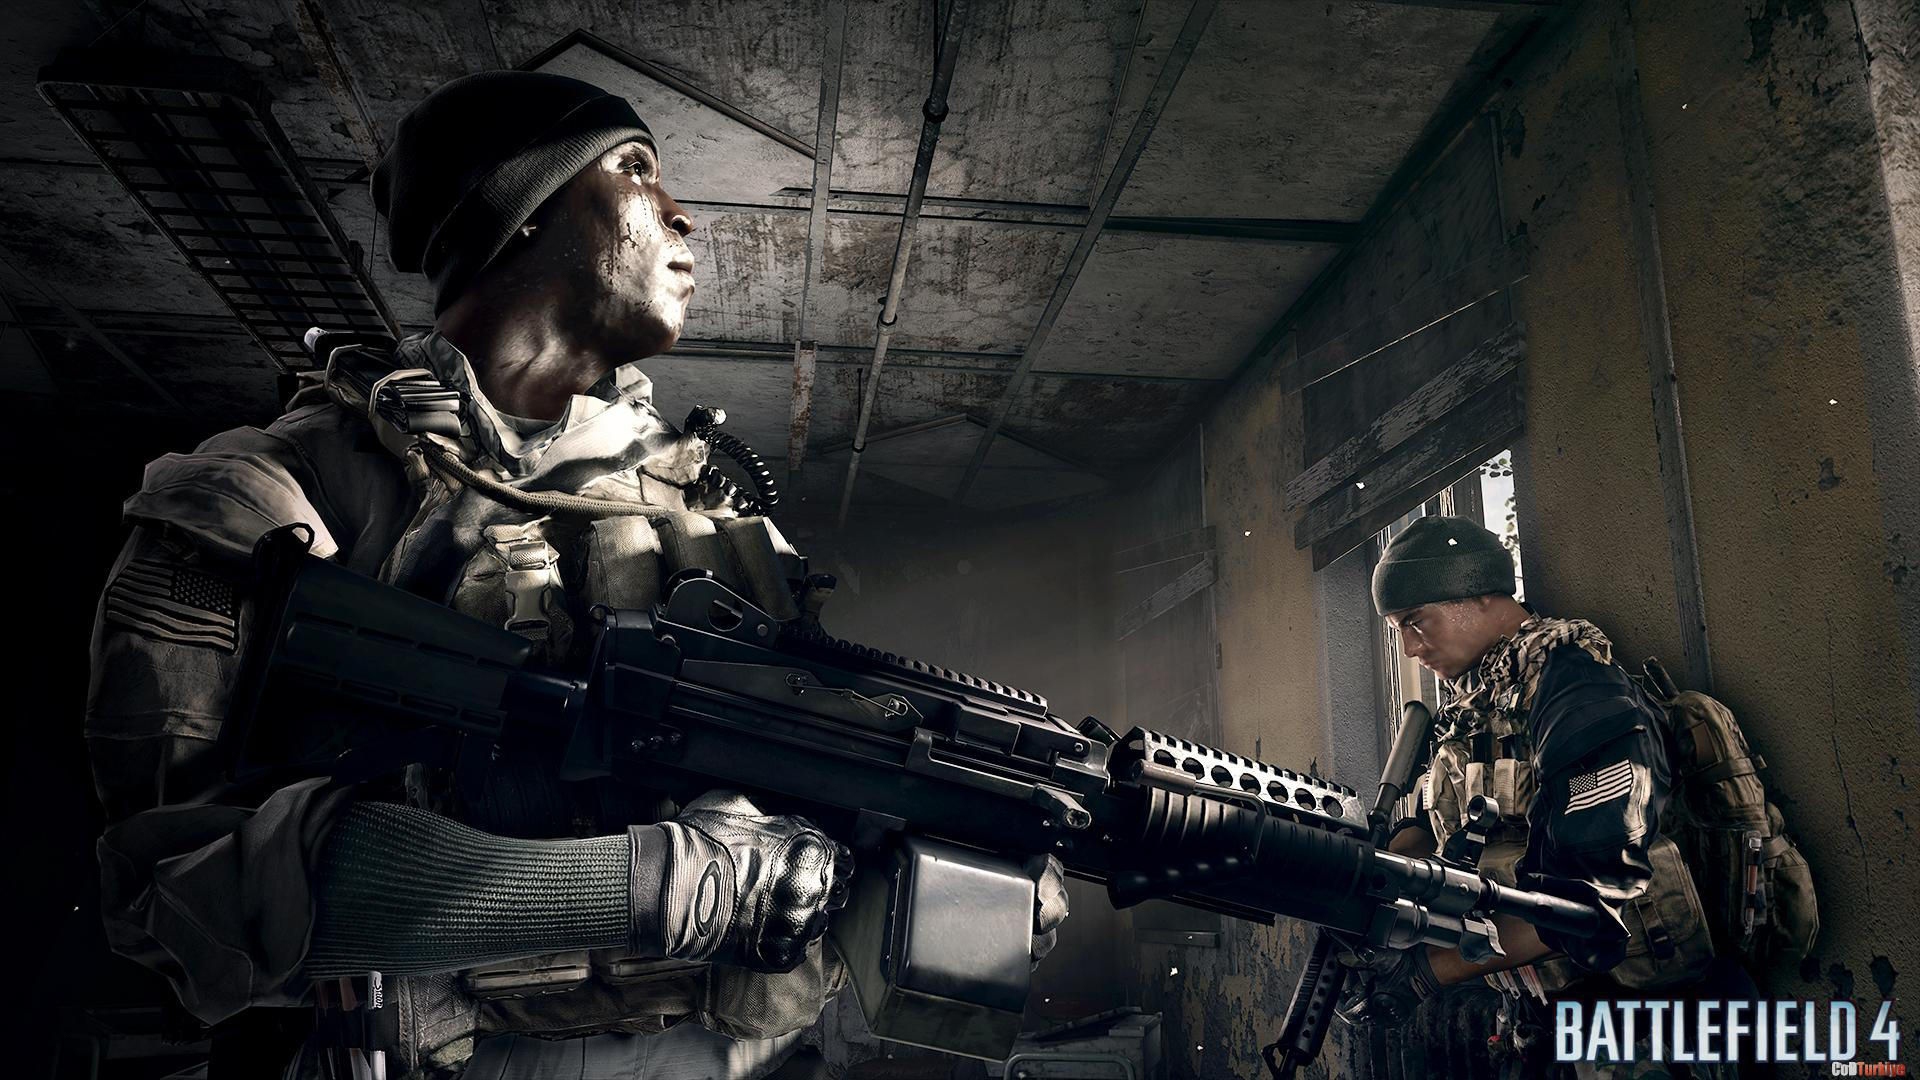 Battlefield 4 Wallpapers Close